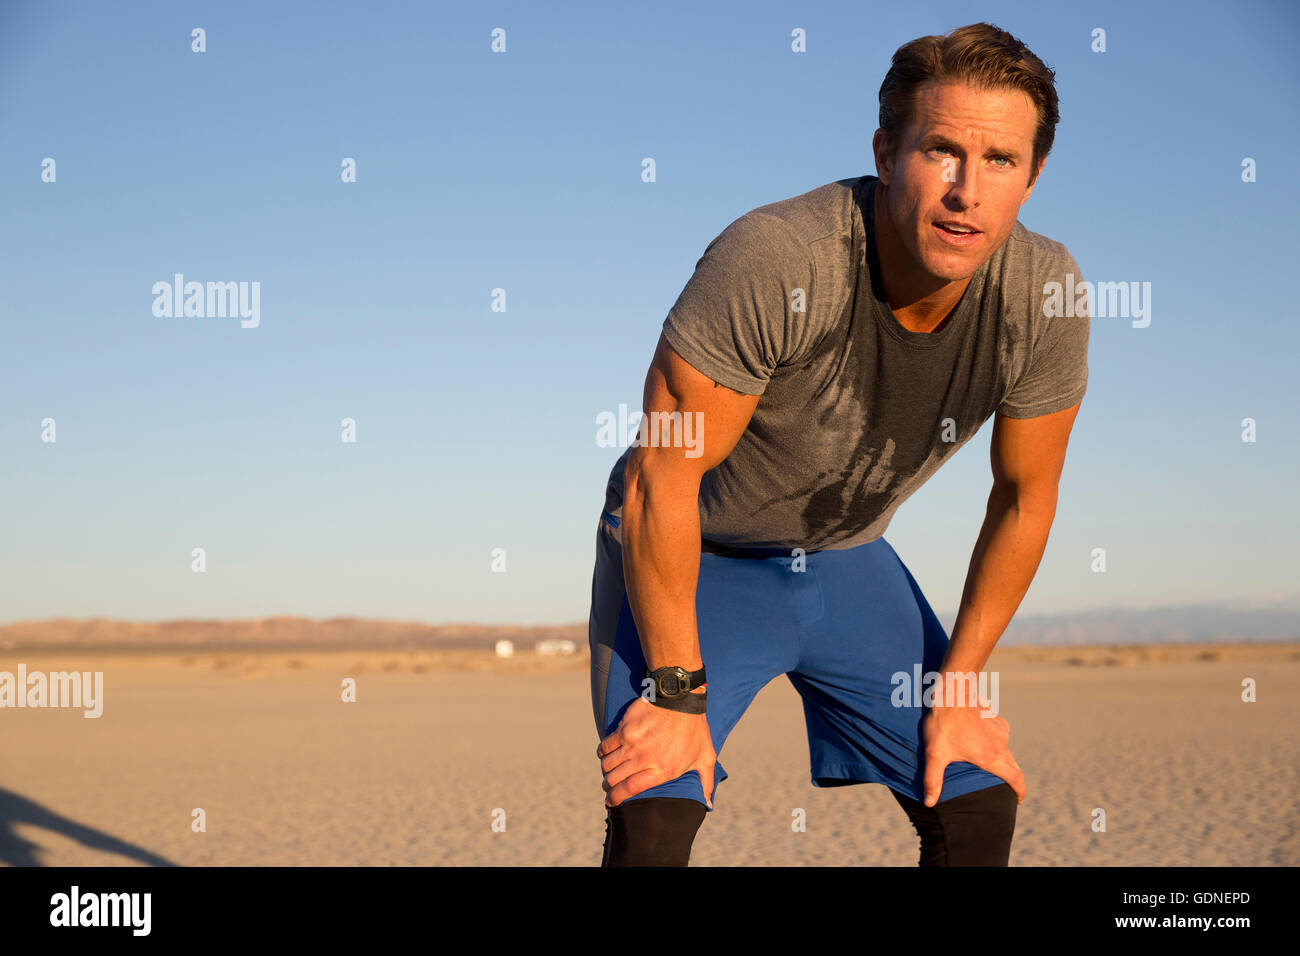 Man training, sweating and leaning forward on dry lake bed, El Mirage, California, USA - Stock Image